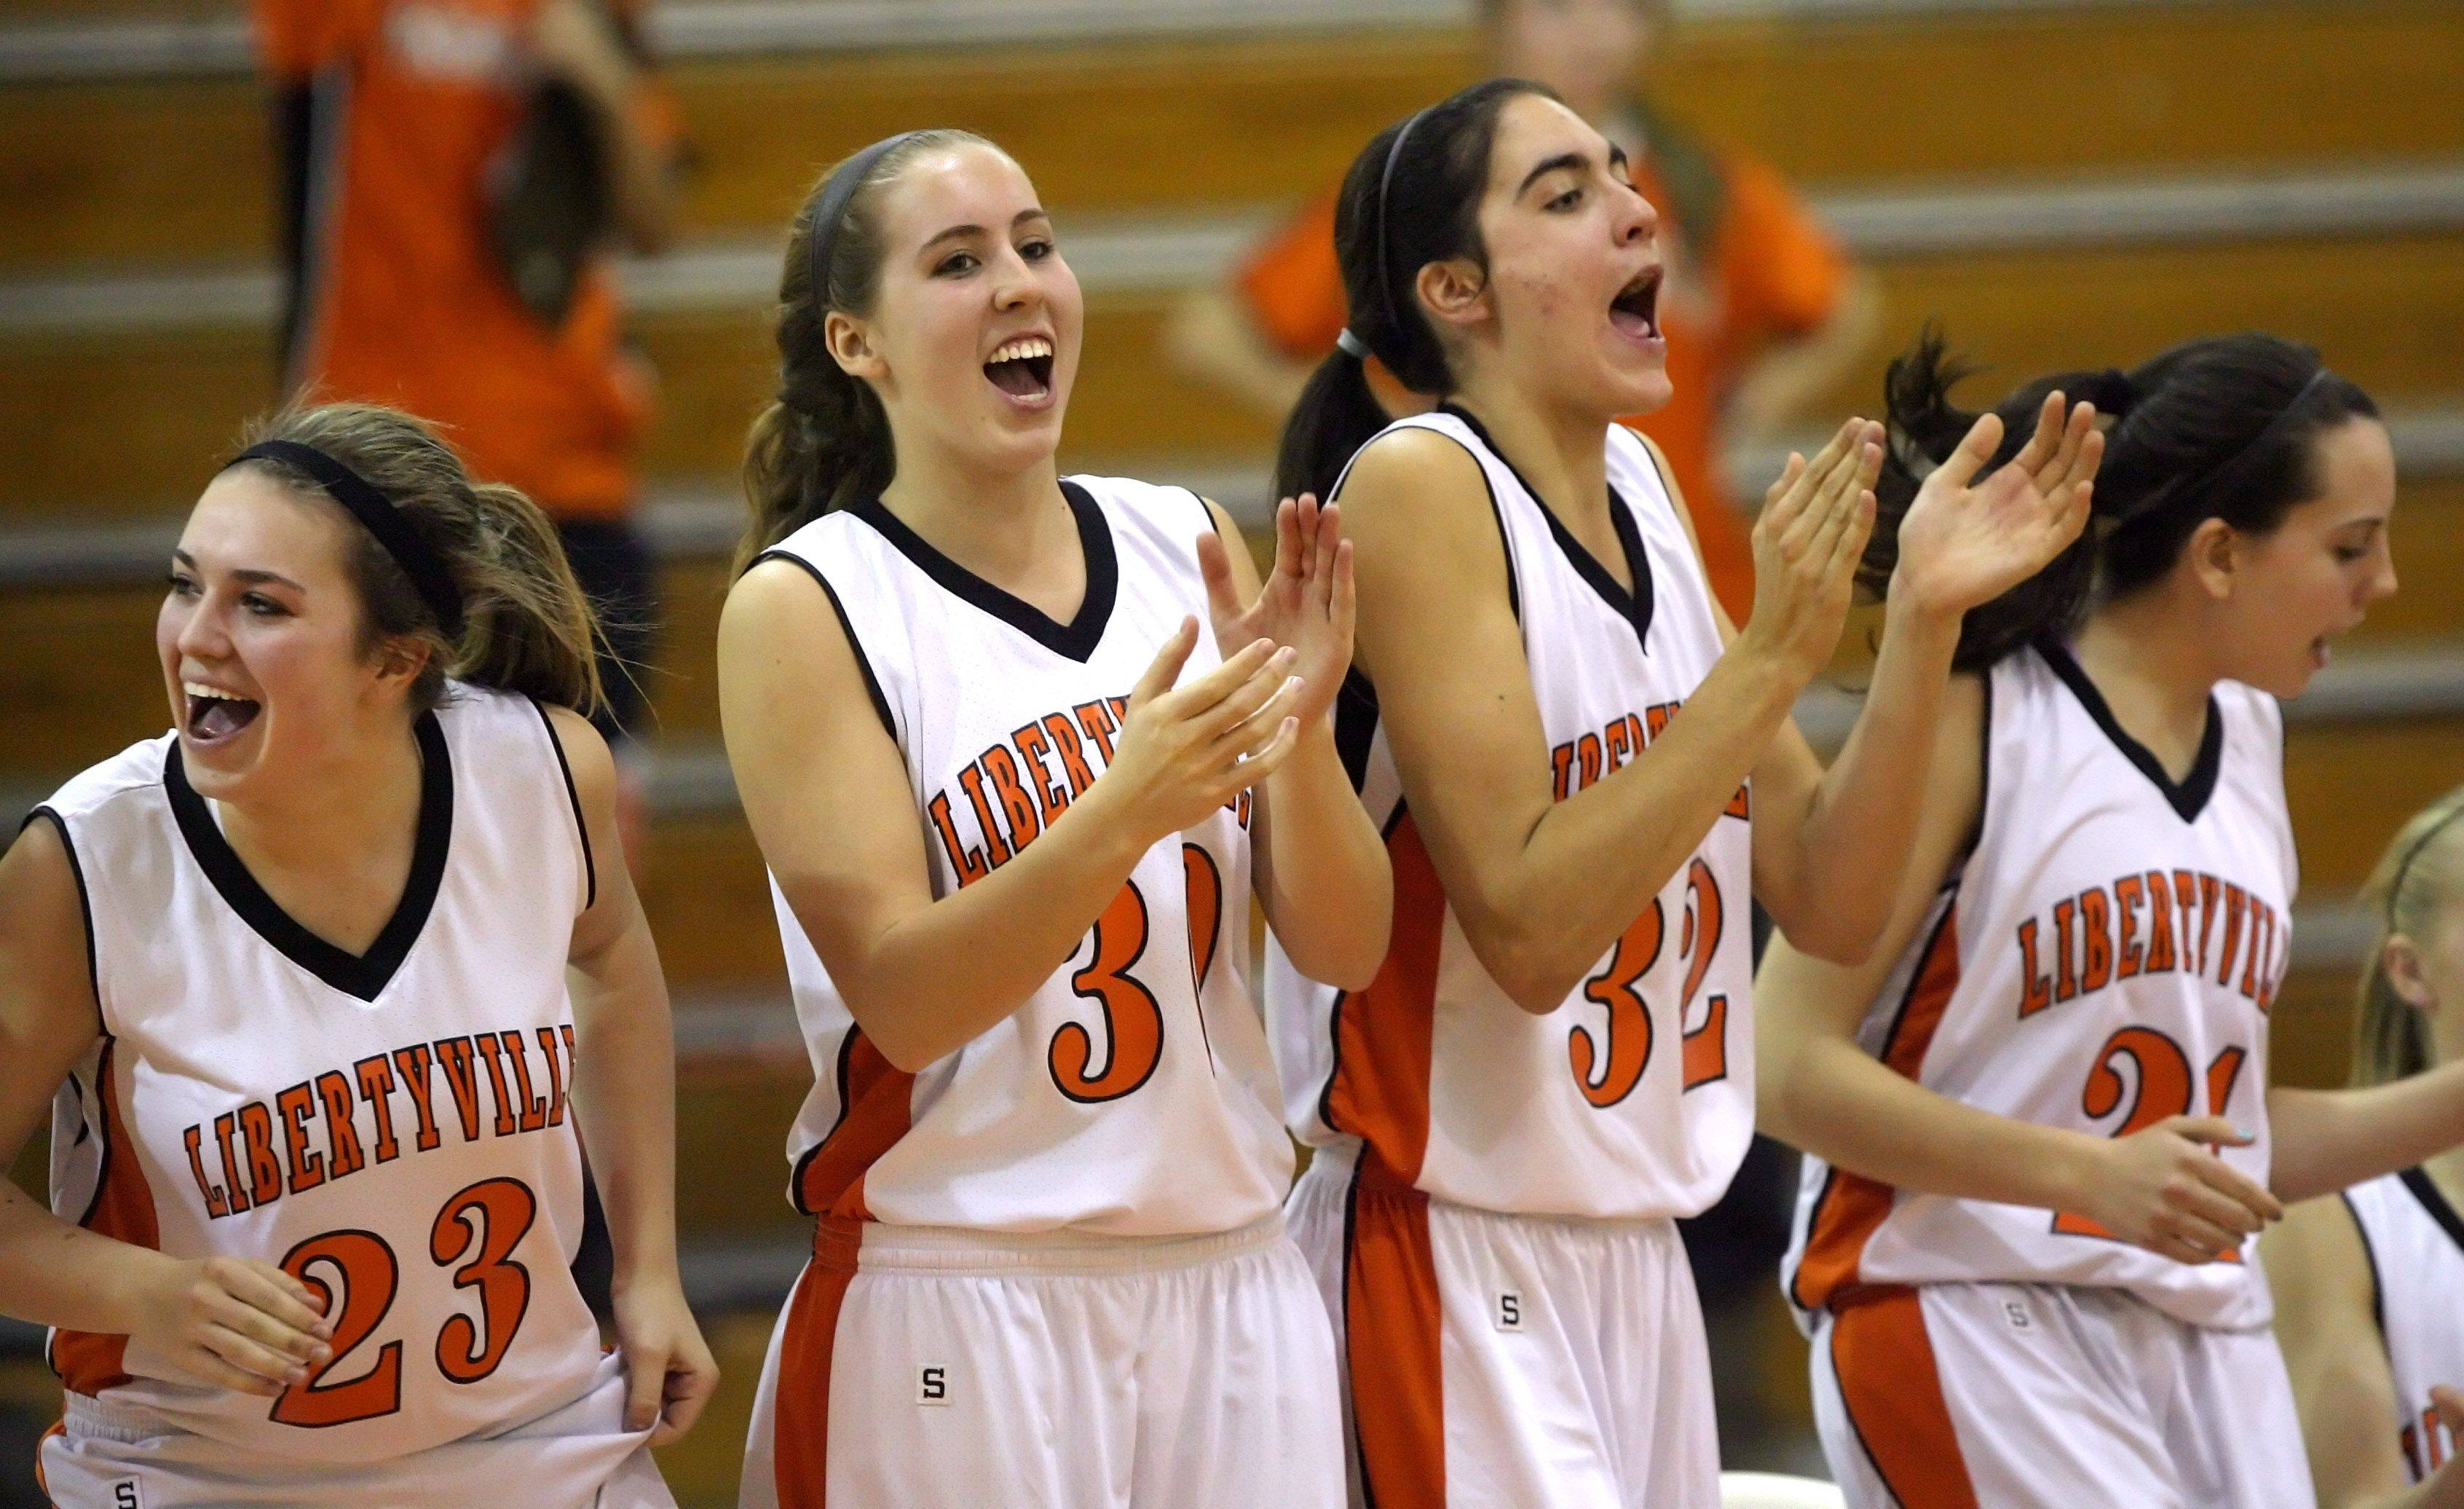 Players on the Libertyville bench cheer during their win over Zion-Benton.